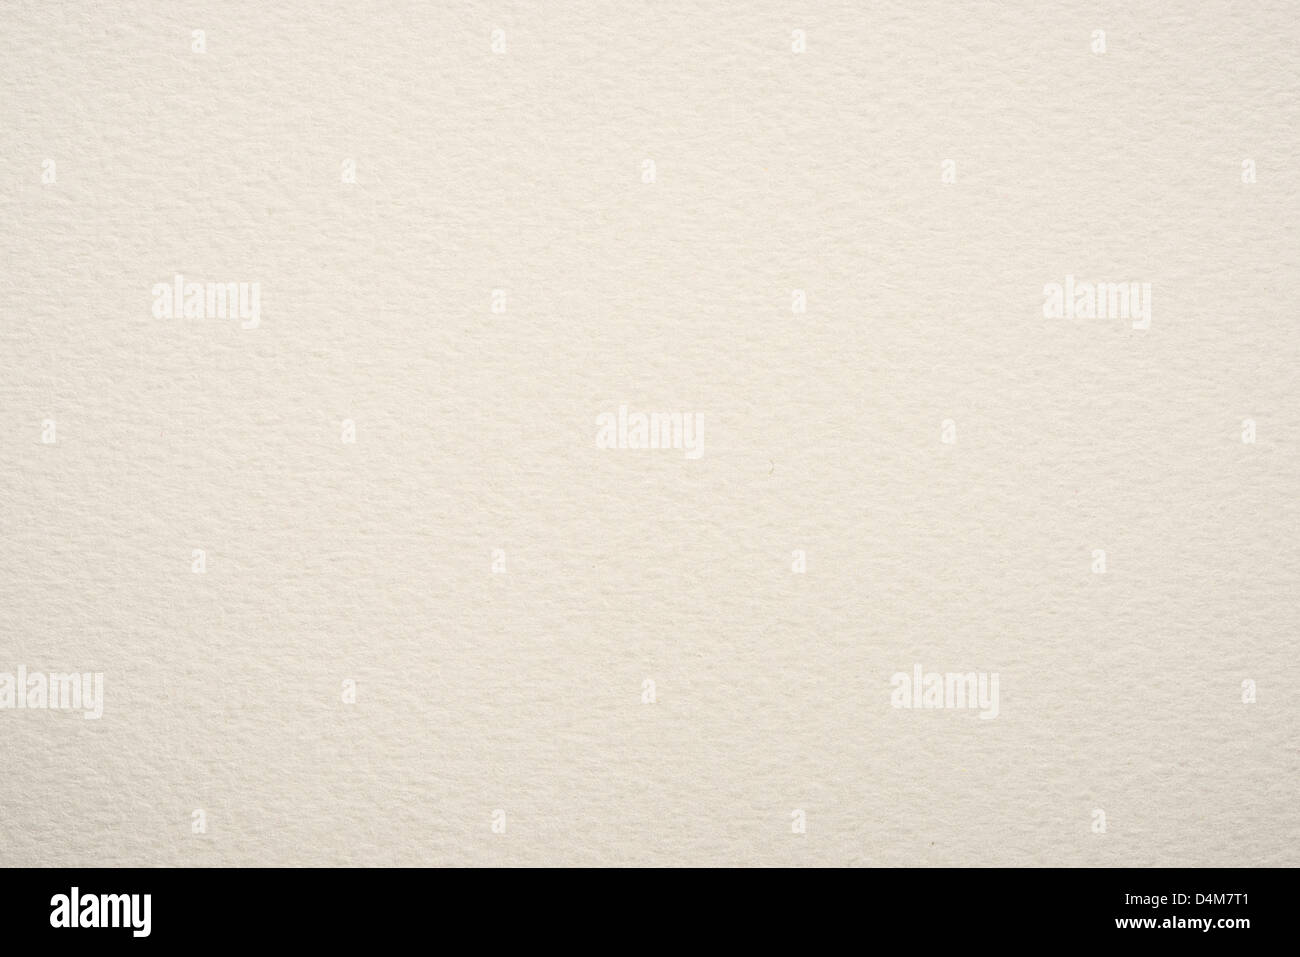 Background of paper texture. Close view - Stock Image